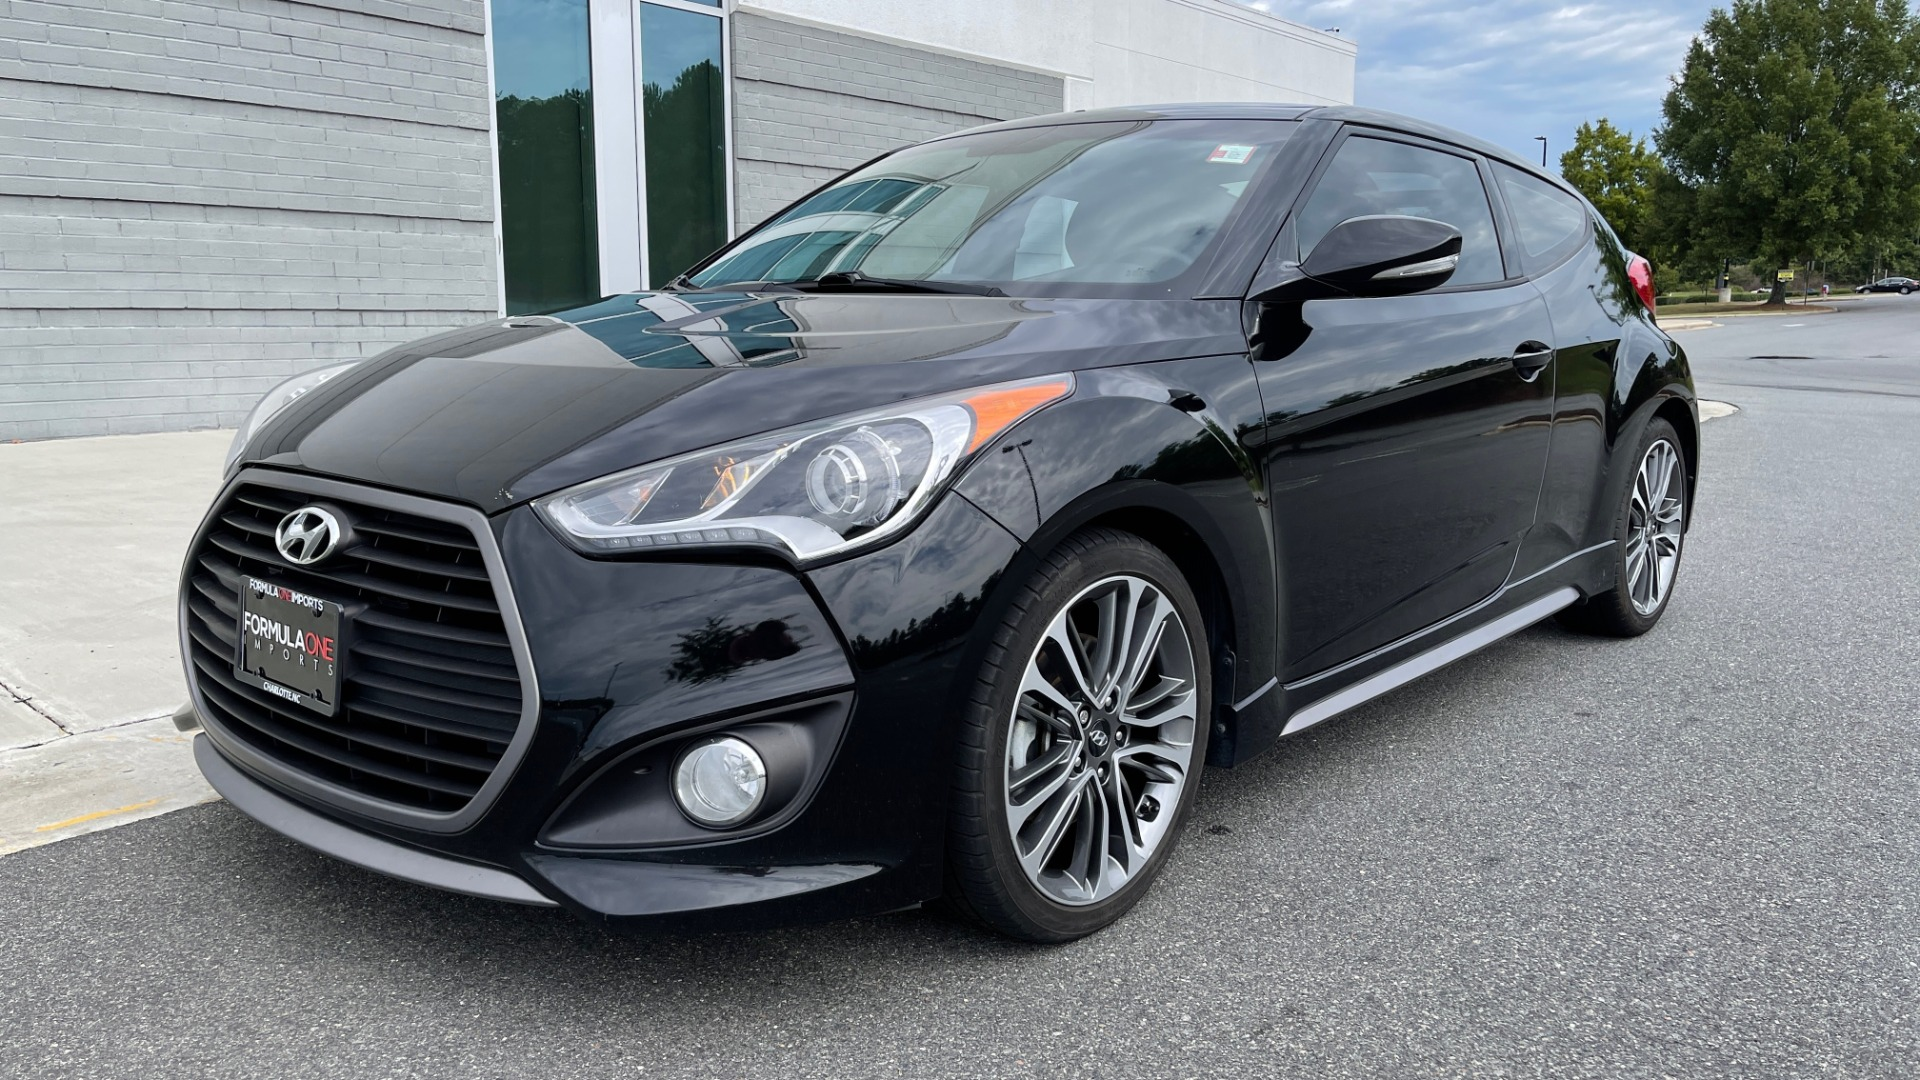 Used 2016 Hyundai VELOSTER TURBO 1.6L / AUTO / NAV / PANO-ROOF / REARVIEW for sale Sold at Formula Imports in Charlotte NC 28227 3